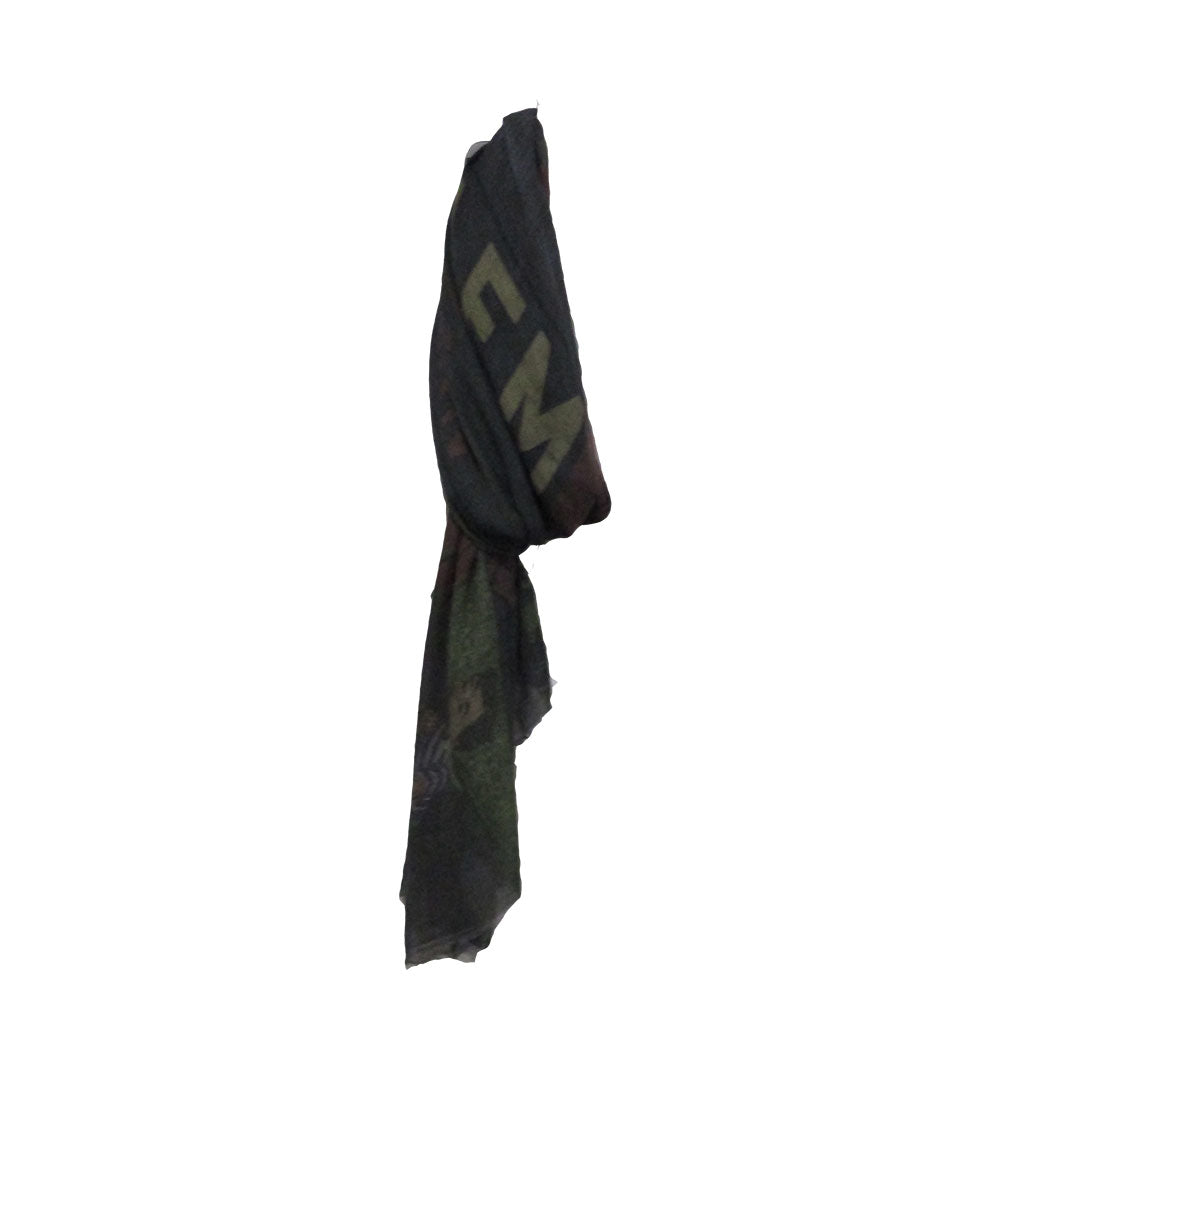 LARGE SCARF, ORIGINAL - RUNDHOLZ BLACK LABEL